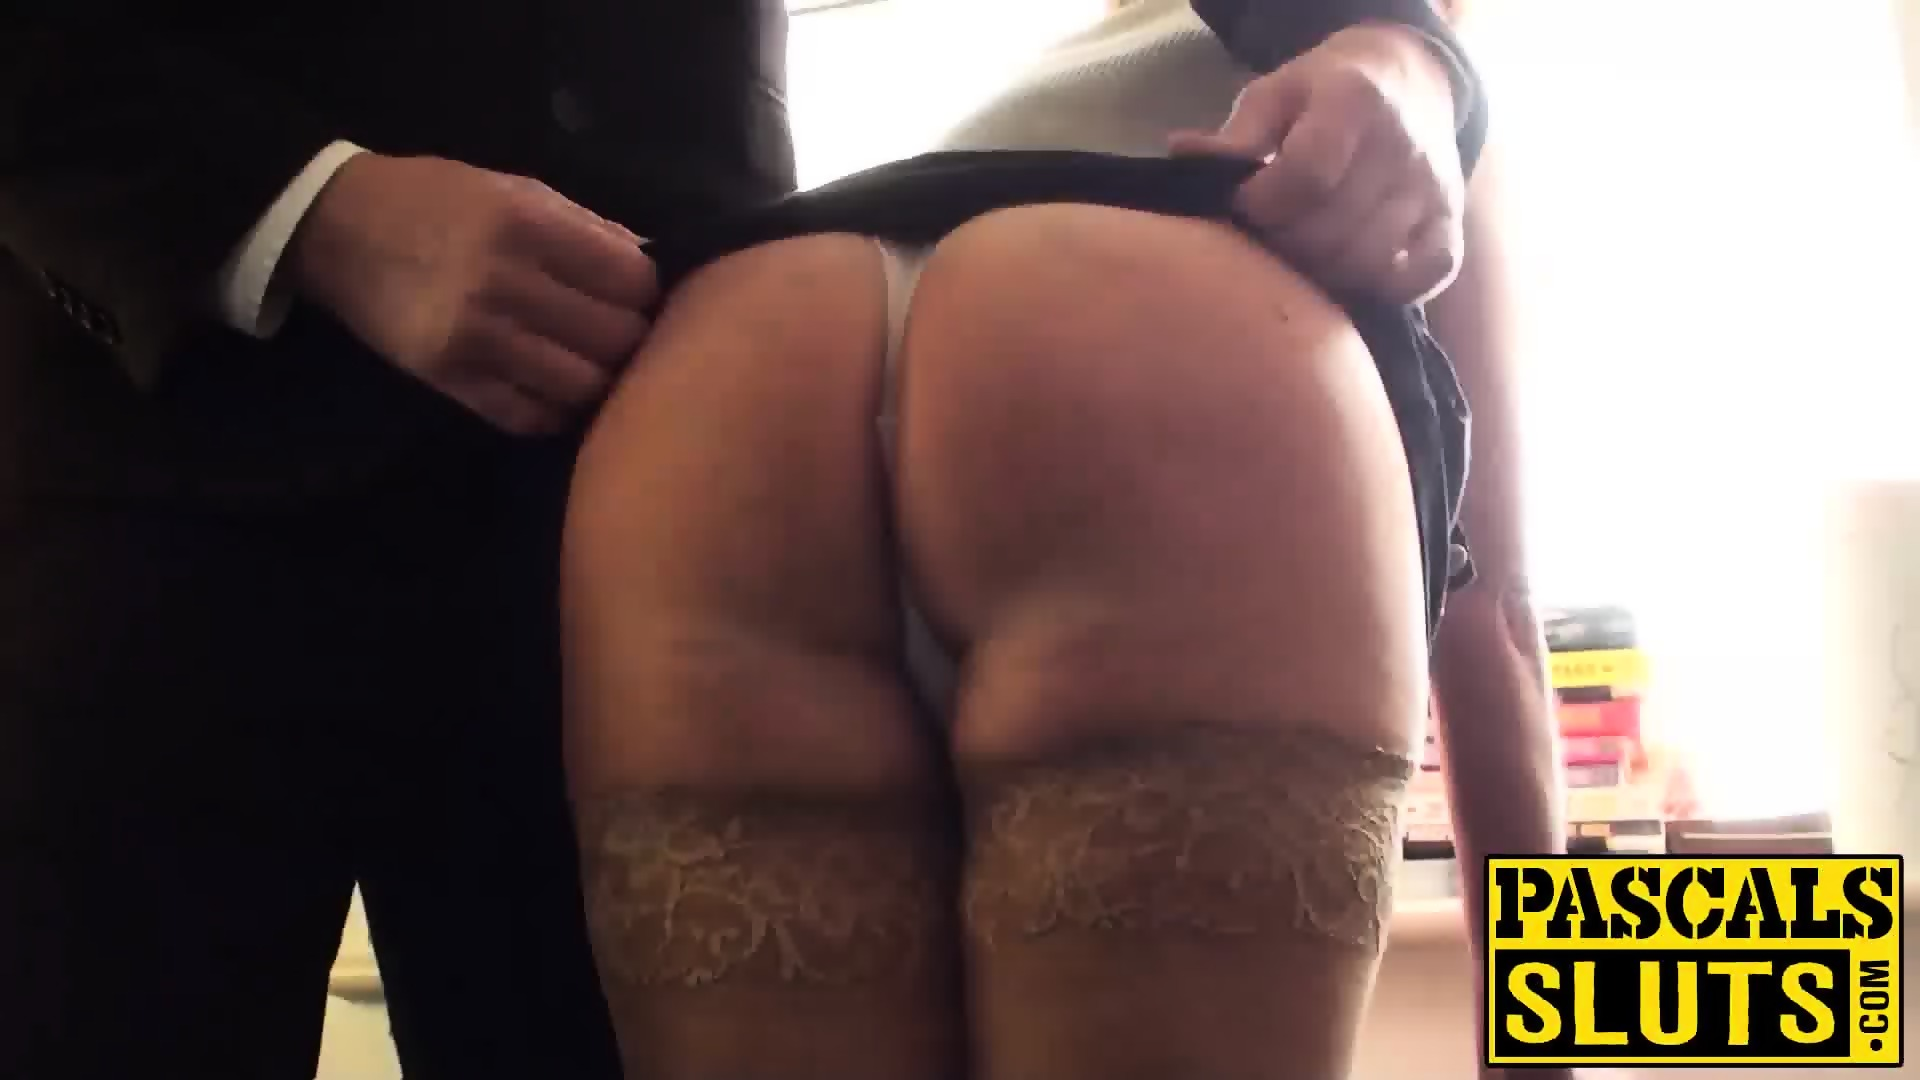 Sexy Mature Slut Amy Needs A Rough Pounding With A Big Cock Amy